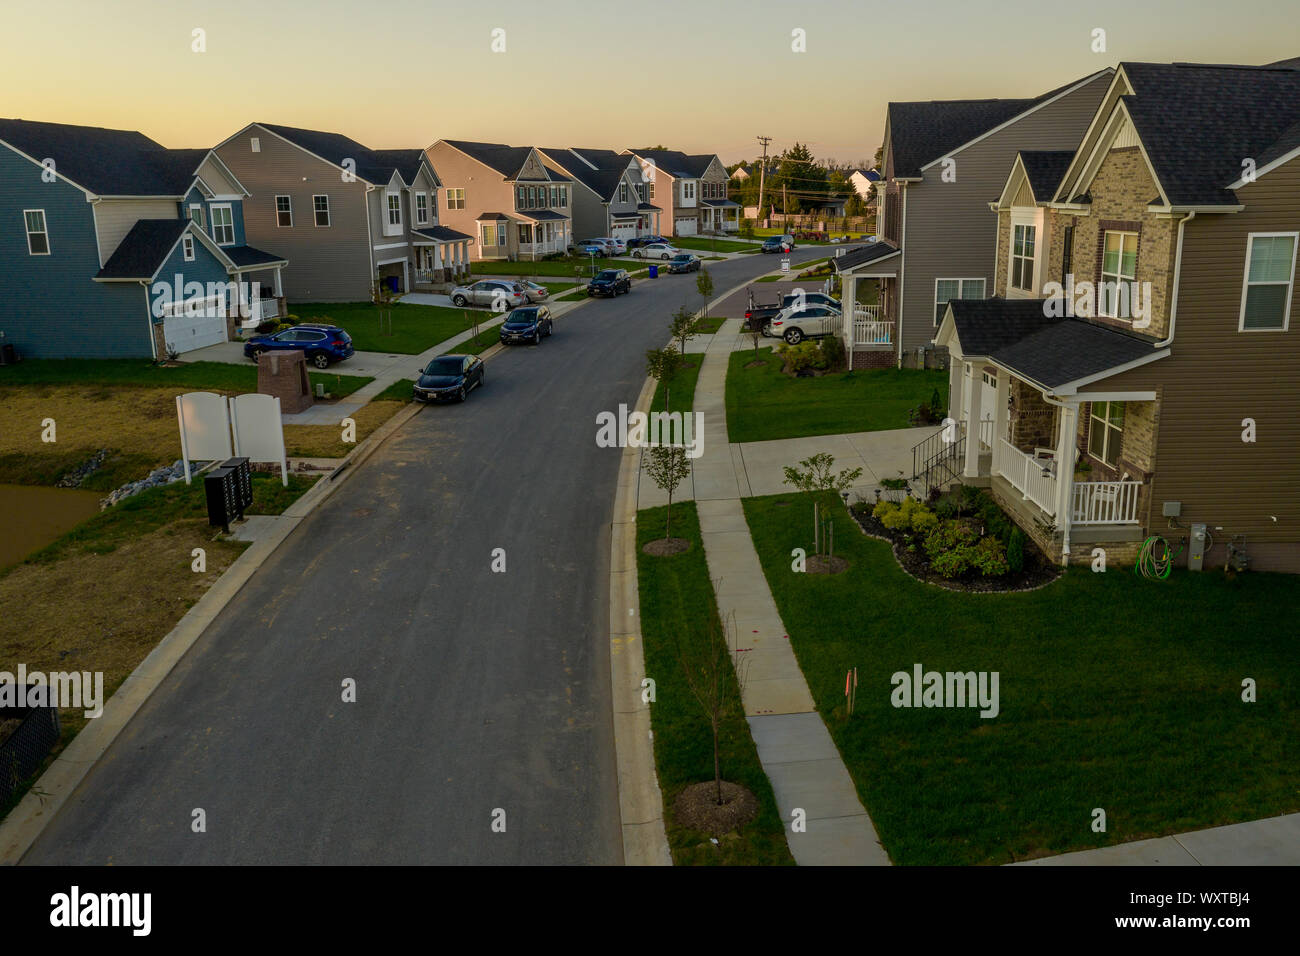 Aerial view of typical American new construction neighborhood street in Maryland for the upper middle class, single family homes USA real estate Stock Photo